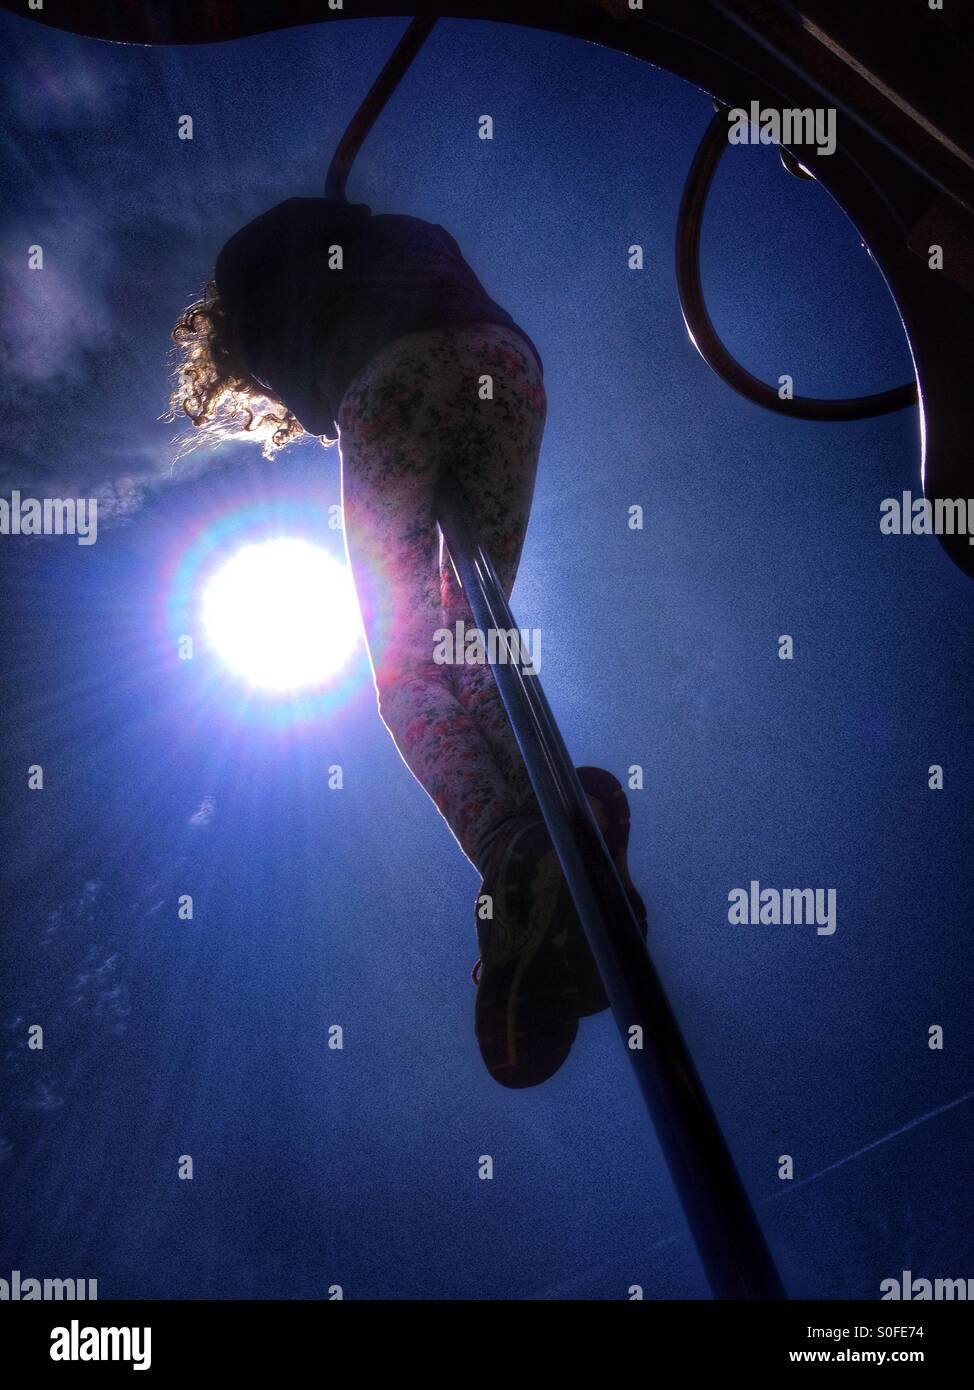 Young girl sliding down pole on playground backlit by sun - Stock Image